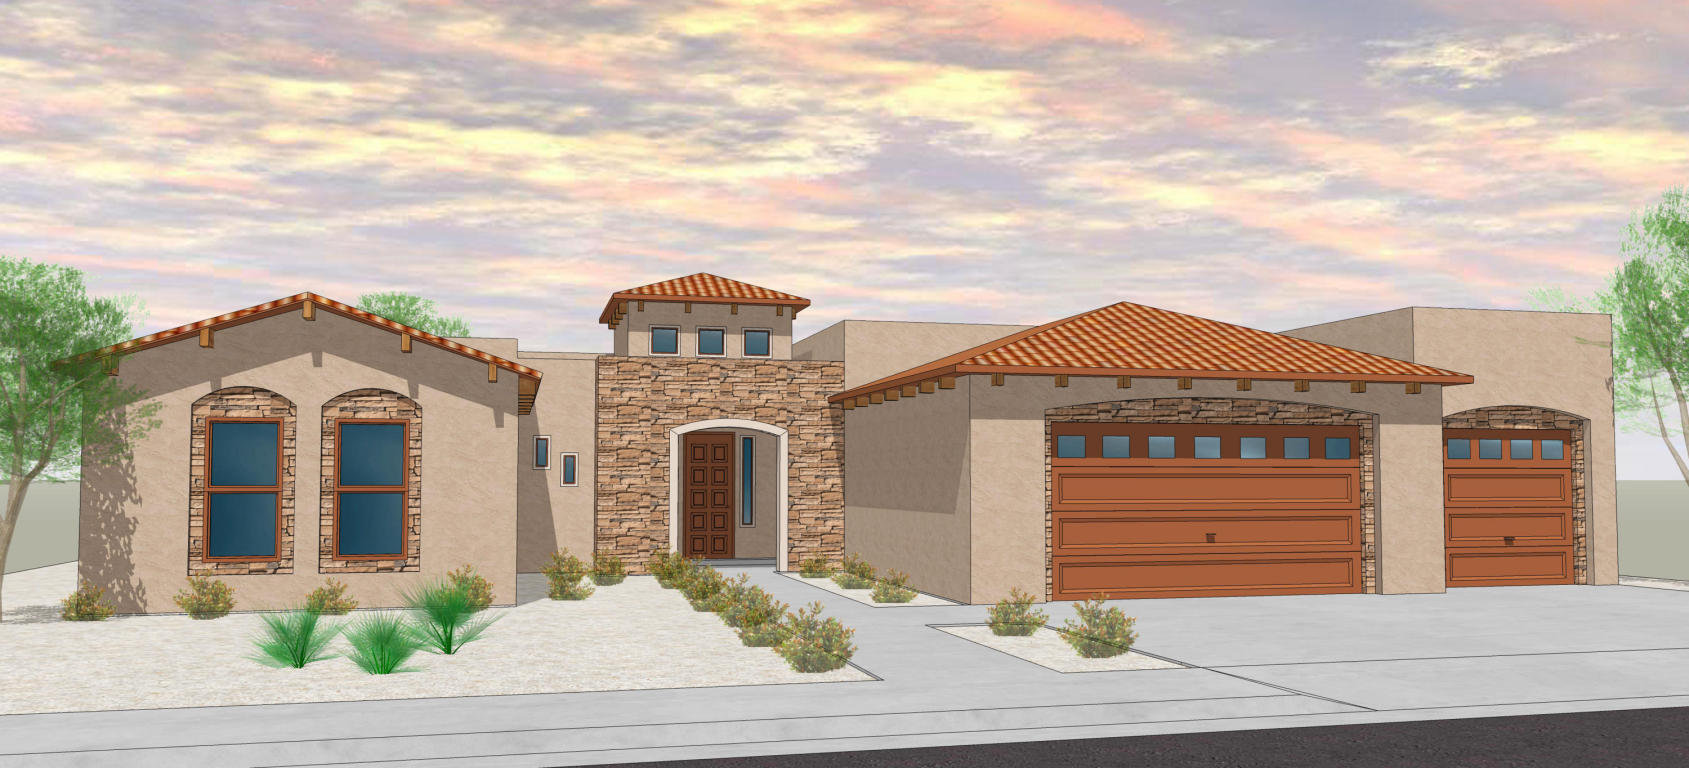 Ocotillo Hills RayLee Homes